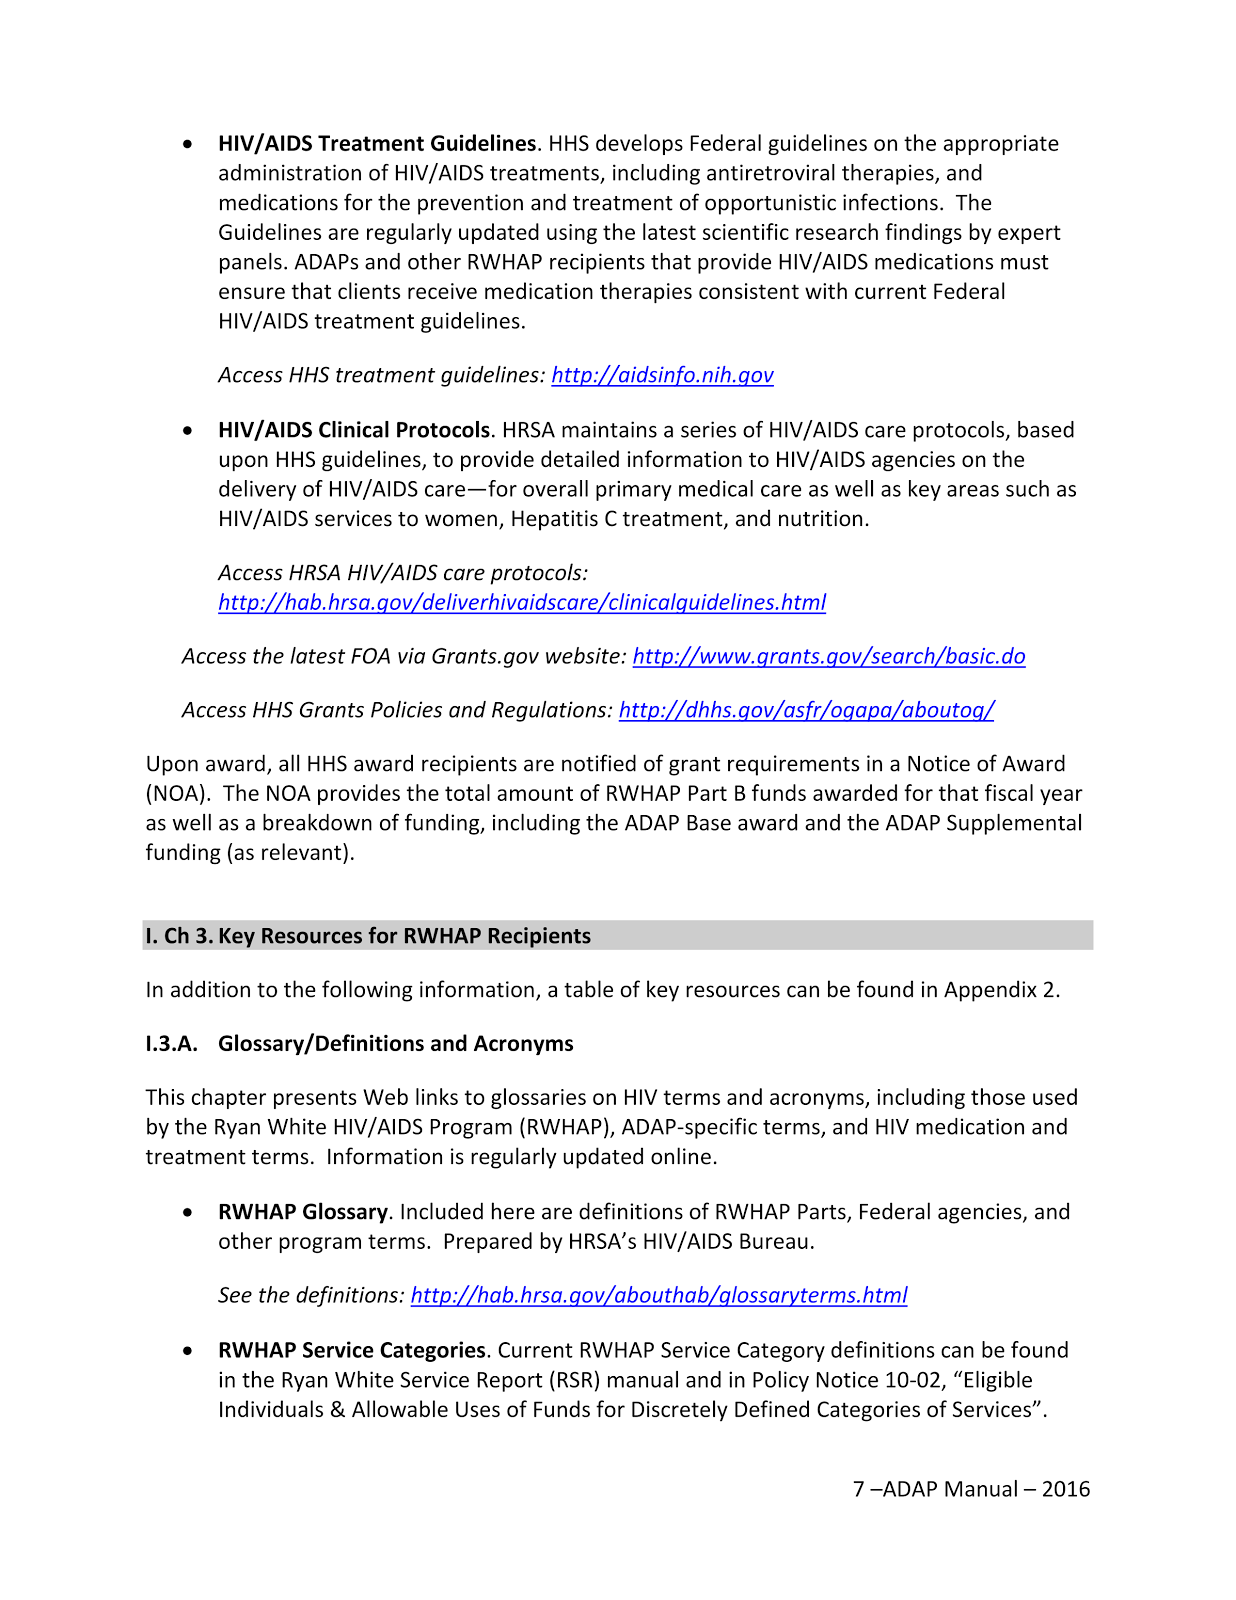 HIVAIDS treatment and research information from the US federal government